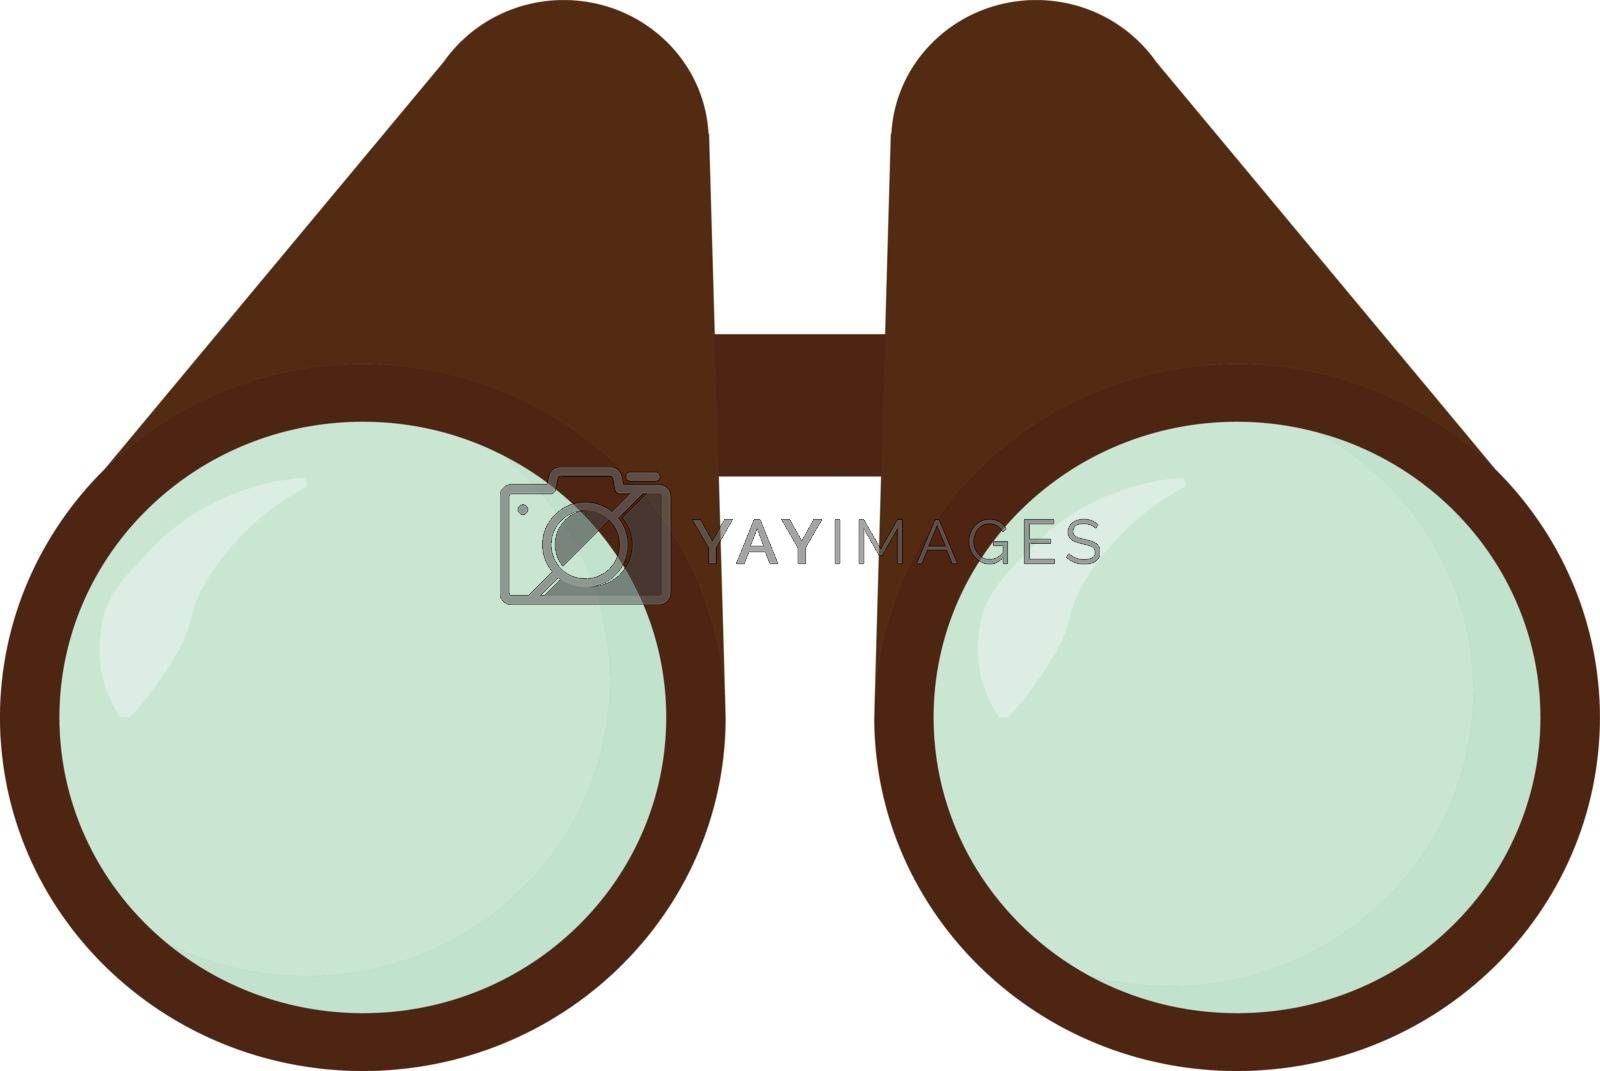 Binoculars, illustration, vector on white background.